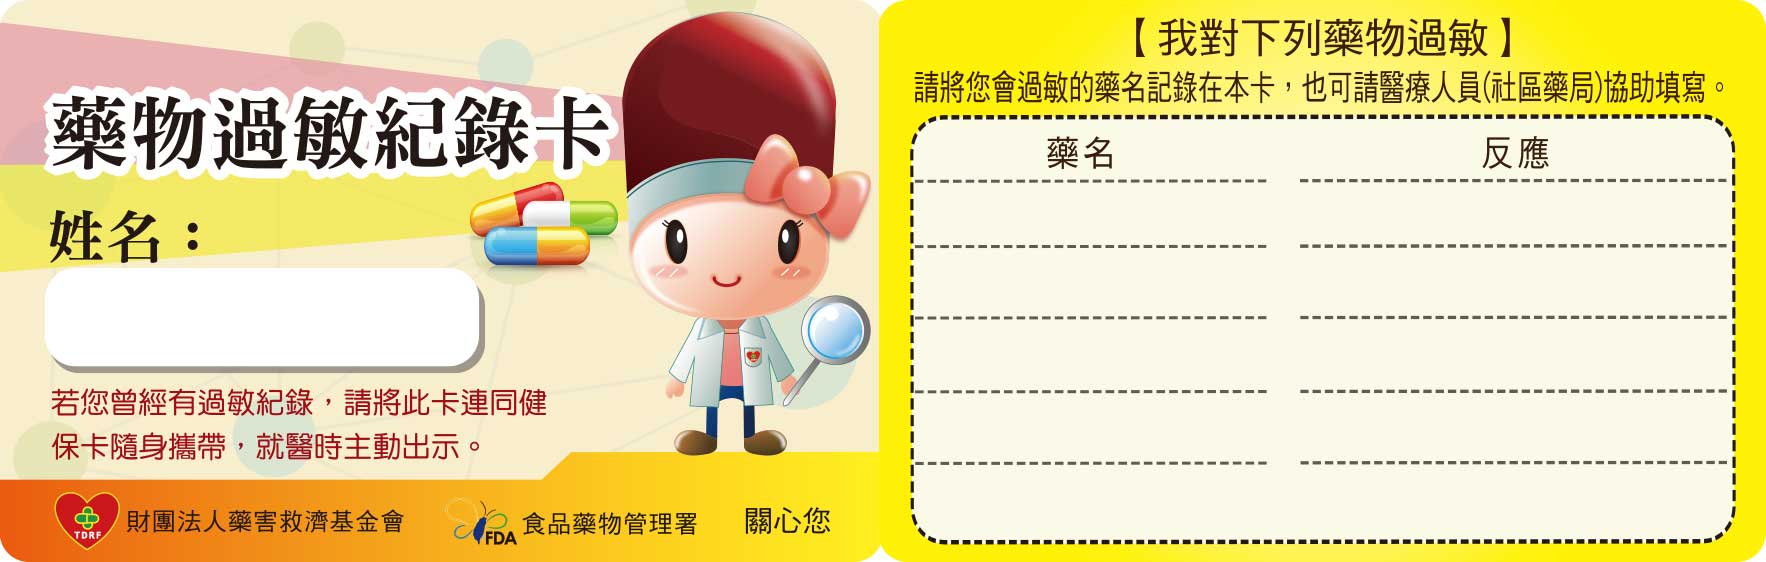 2014dr-card-webview